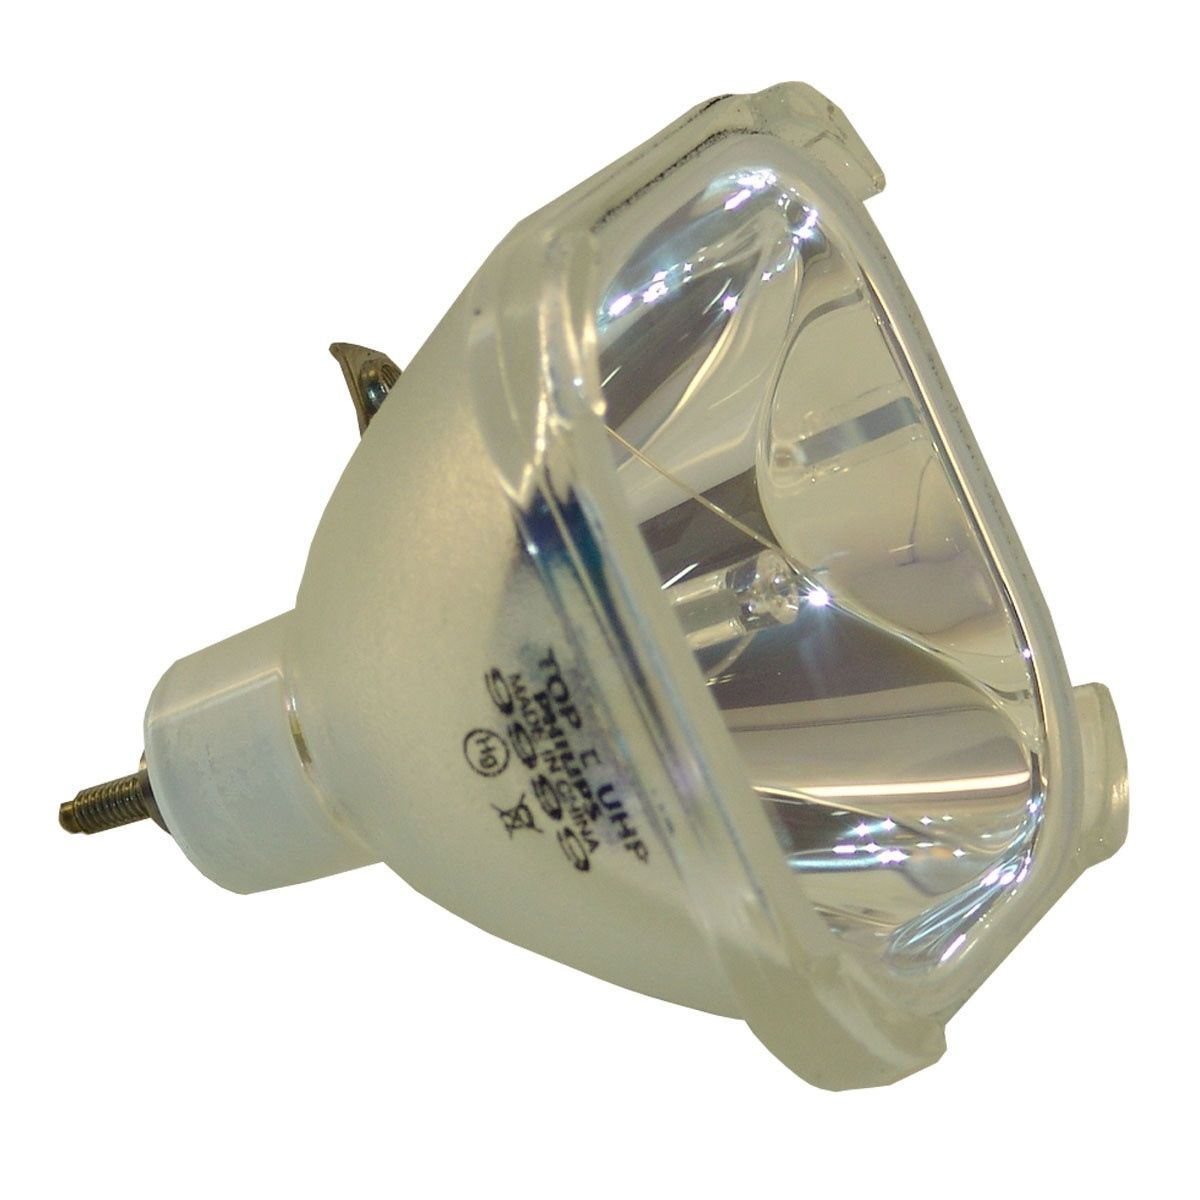 Compatible Bare Bulb LV-LP03 2013A001 for Canon LV-7300 Projector Lamp Bulb without housing compatible bare bulb lv lp30 2481b001 for canon lv 7365 projector lamp bulb without housing